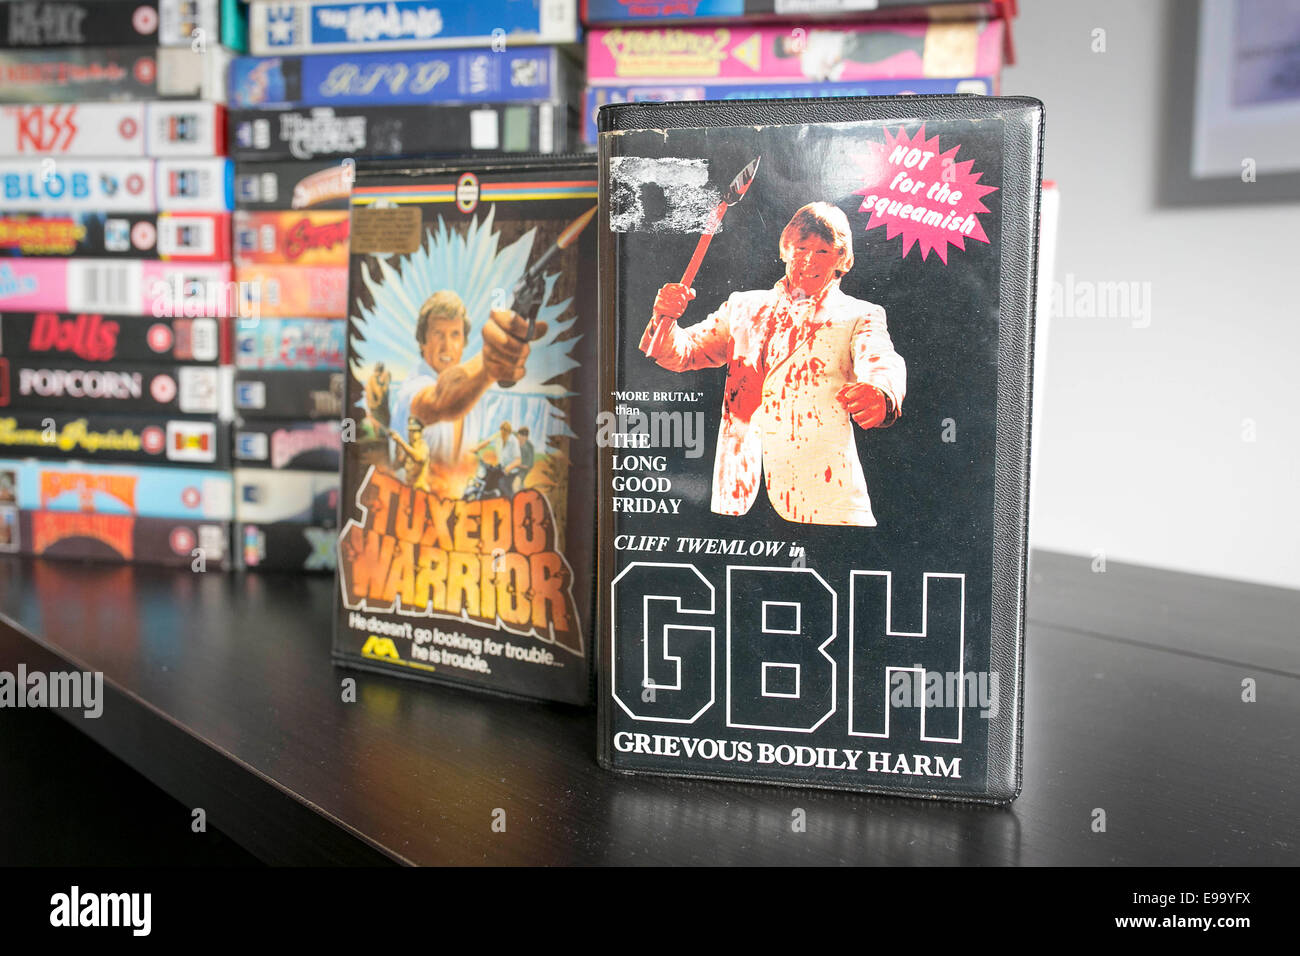 70s and 80s cult videos including Clive Tremelow GBH - Stock Image